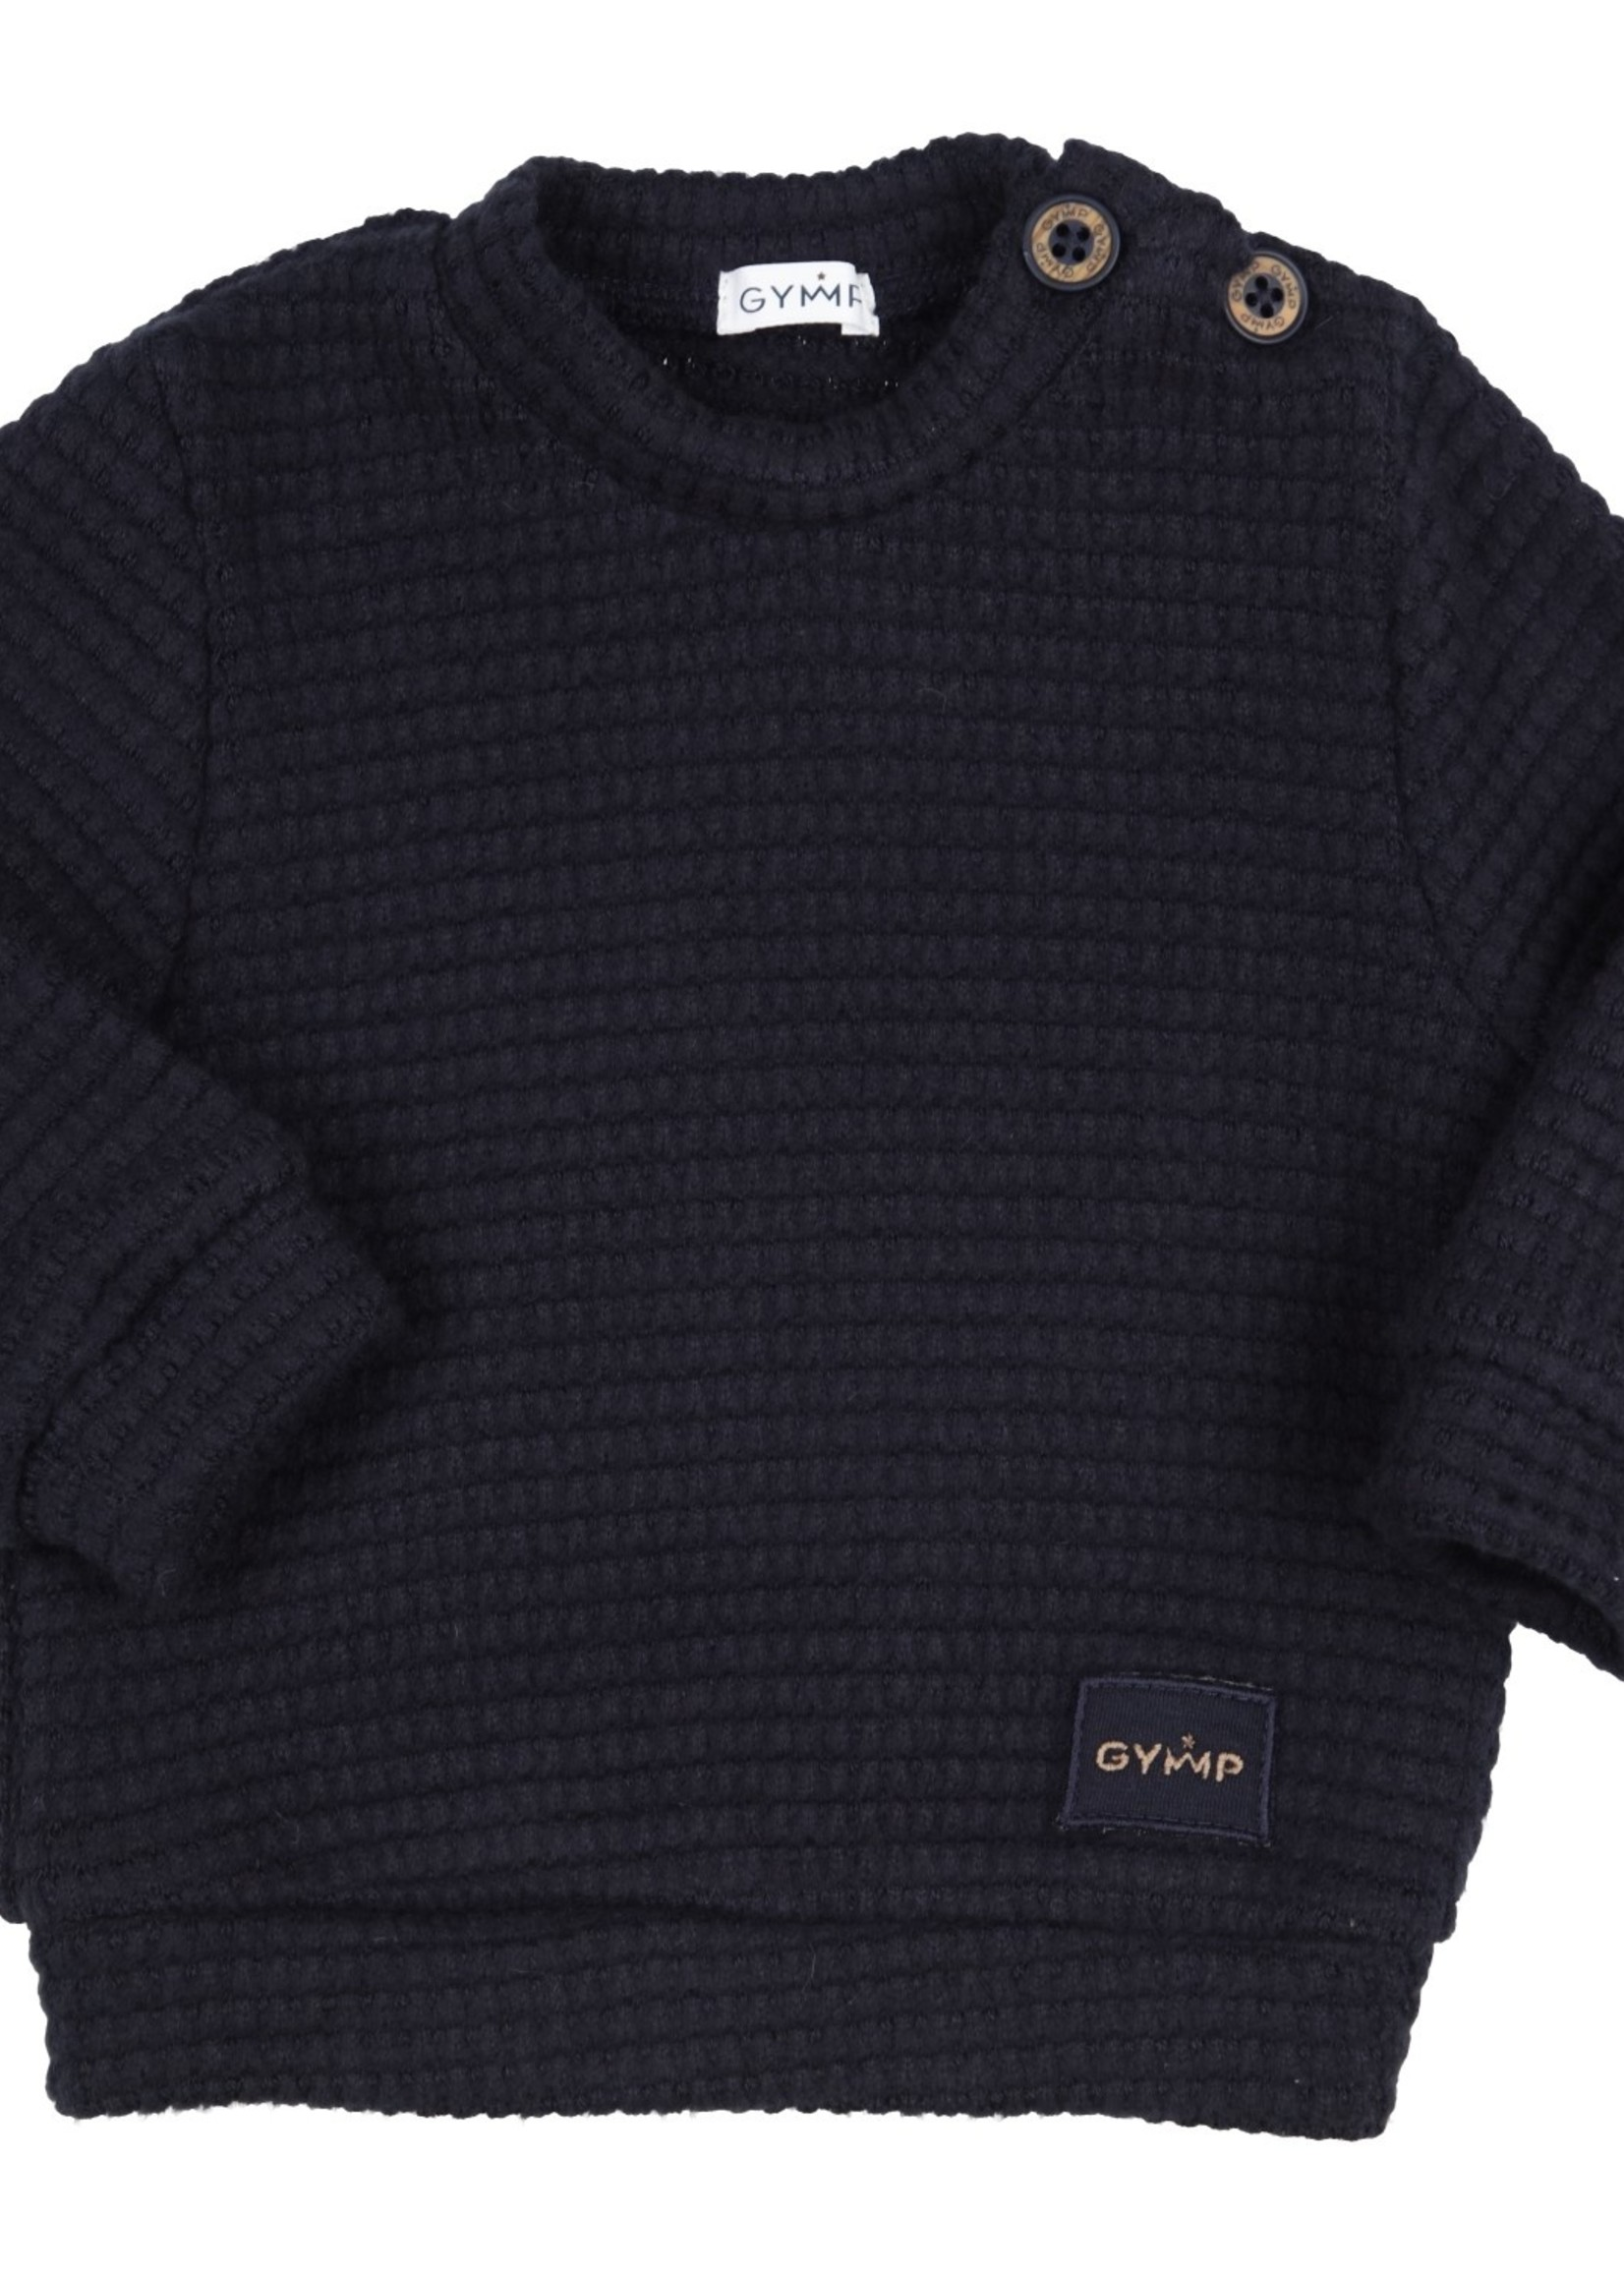 Gymp Gymp pullover sweater marine